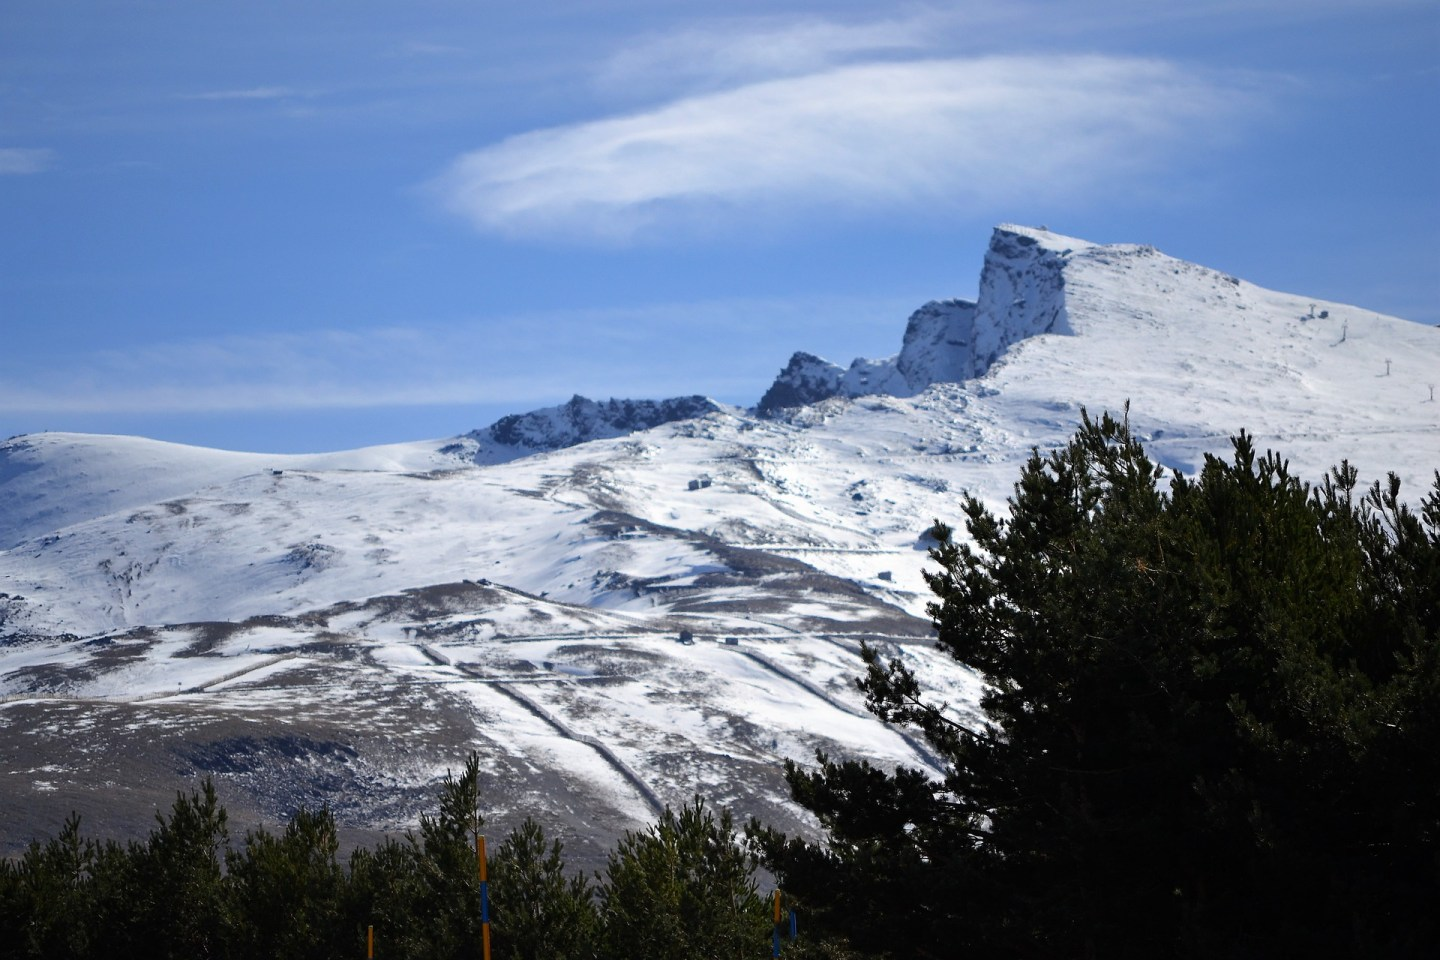 Spain misconceptions - Sierra Nevada